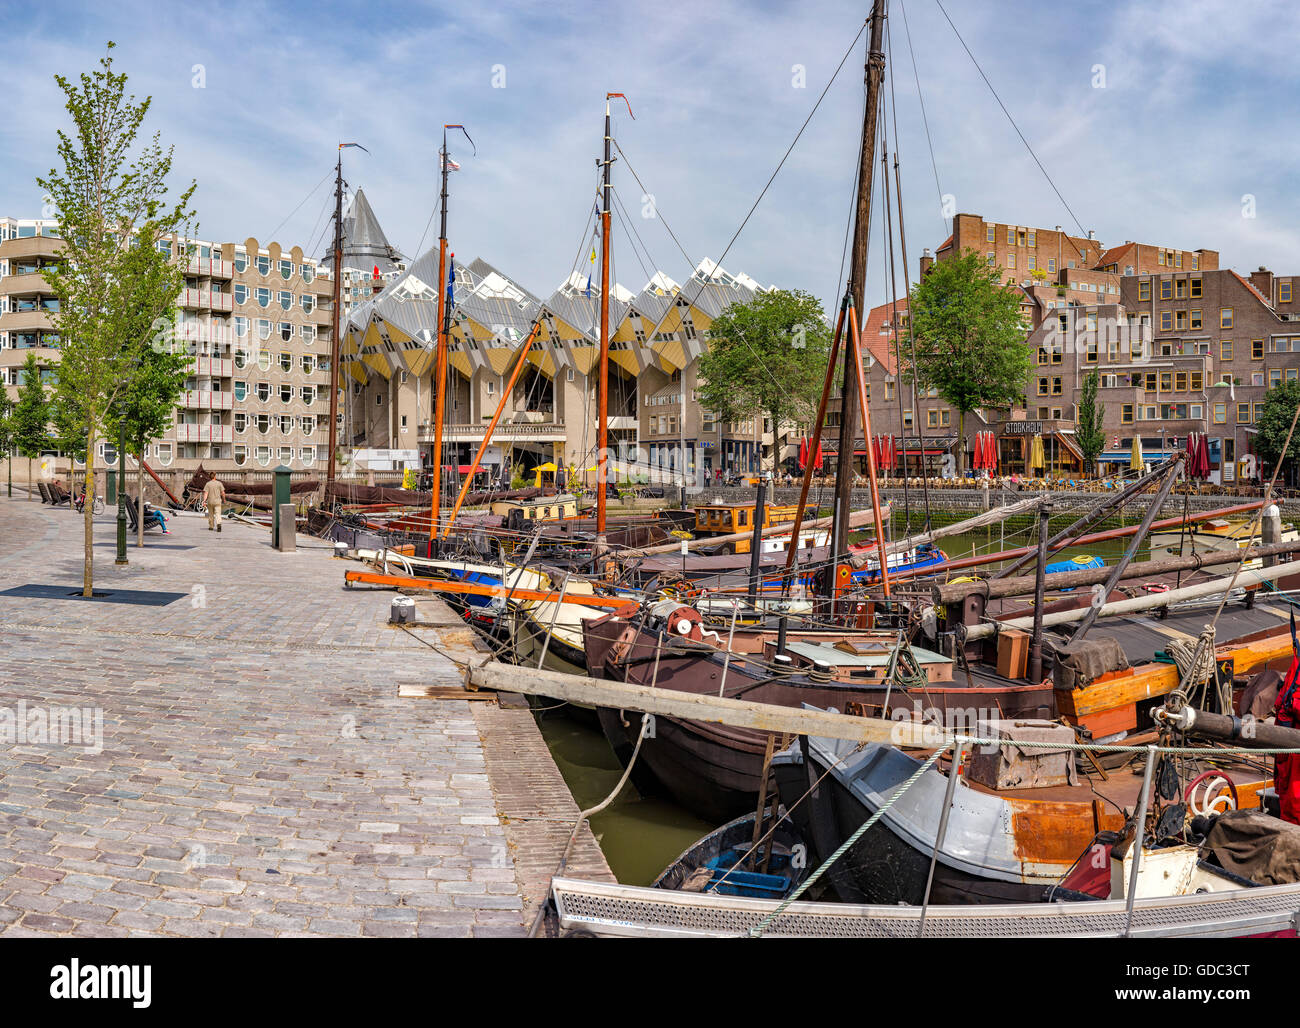 Rotterdam,Cube houses,the Old Harbour - Stock Image